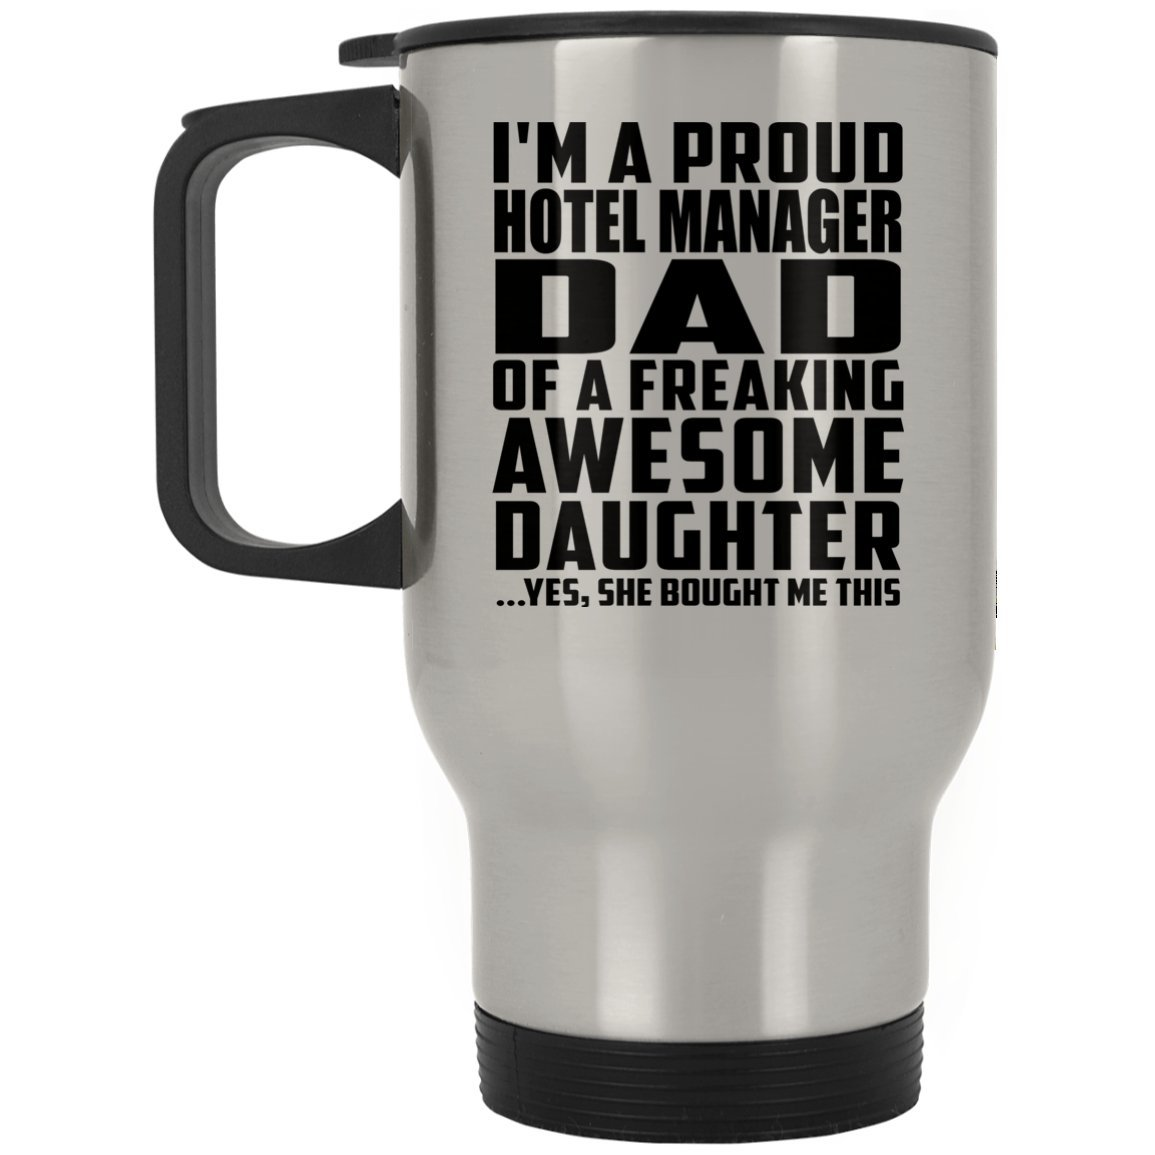 Dad Travel Mug, I'm A Proud Hotel Manager Dad Of A Freaking Awesome Daughter, She Bought Me This - Travel Mug, Stainless Steel Tumbler, Best Gift for Father Dad from Daughter Kid